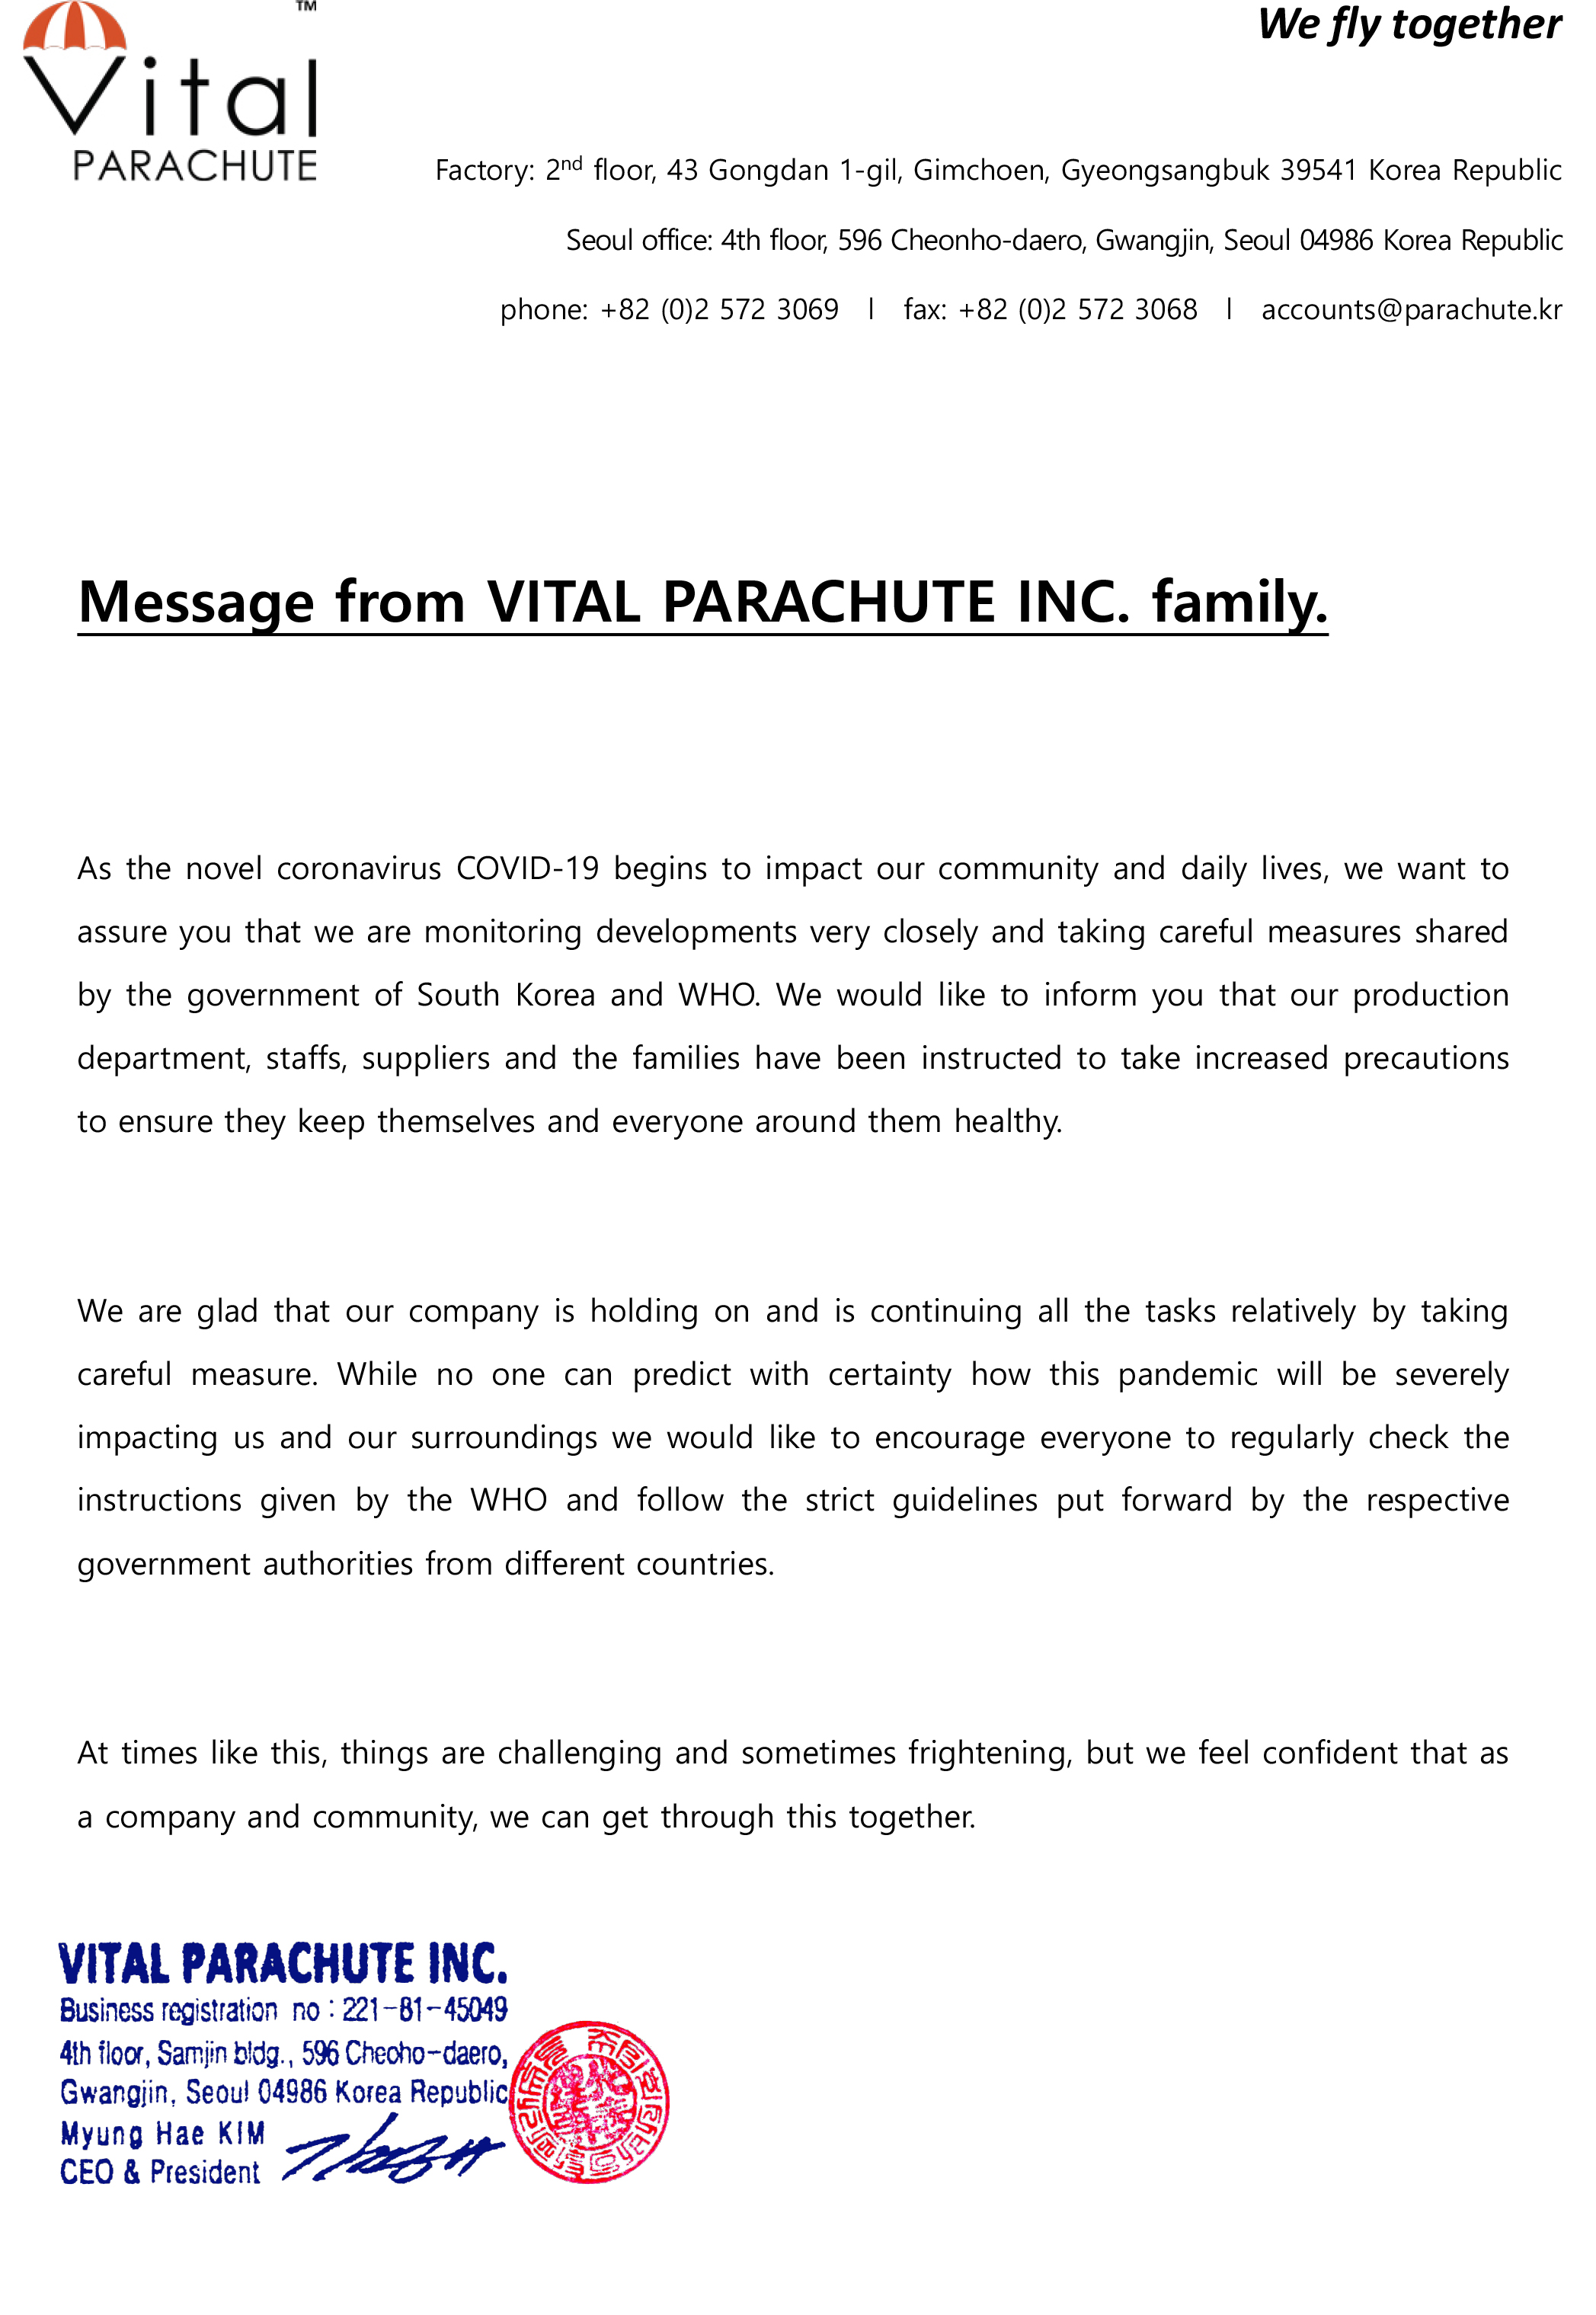 message from VITAL PARACHUTE INC Corona COVID-19.jpg